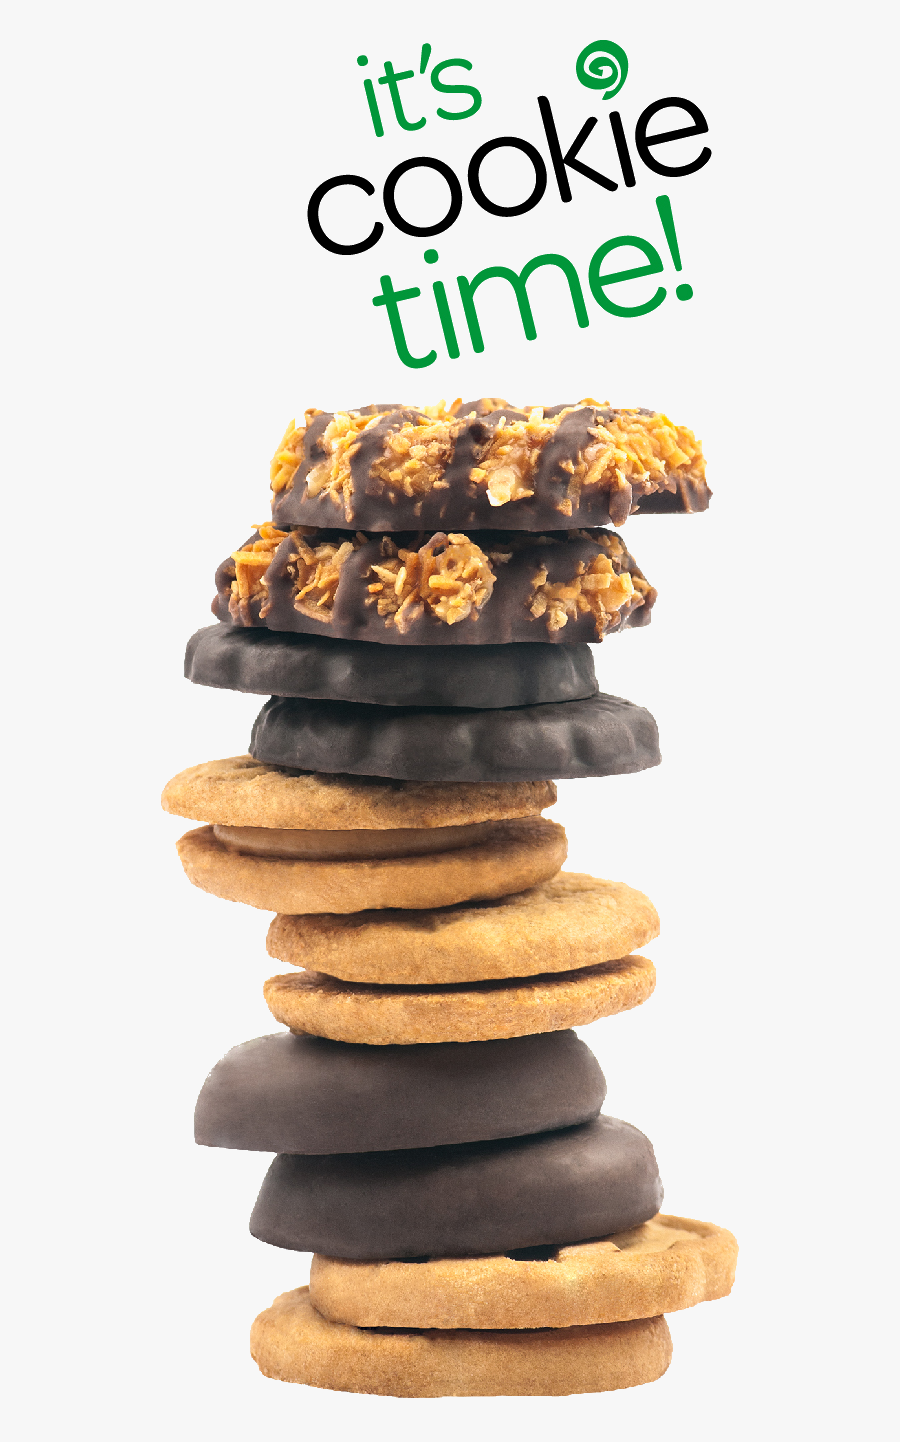 Girl Scout Cookies 2019 Lineup , Free Transparent Clipart.